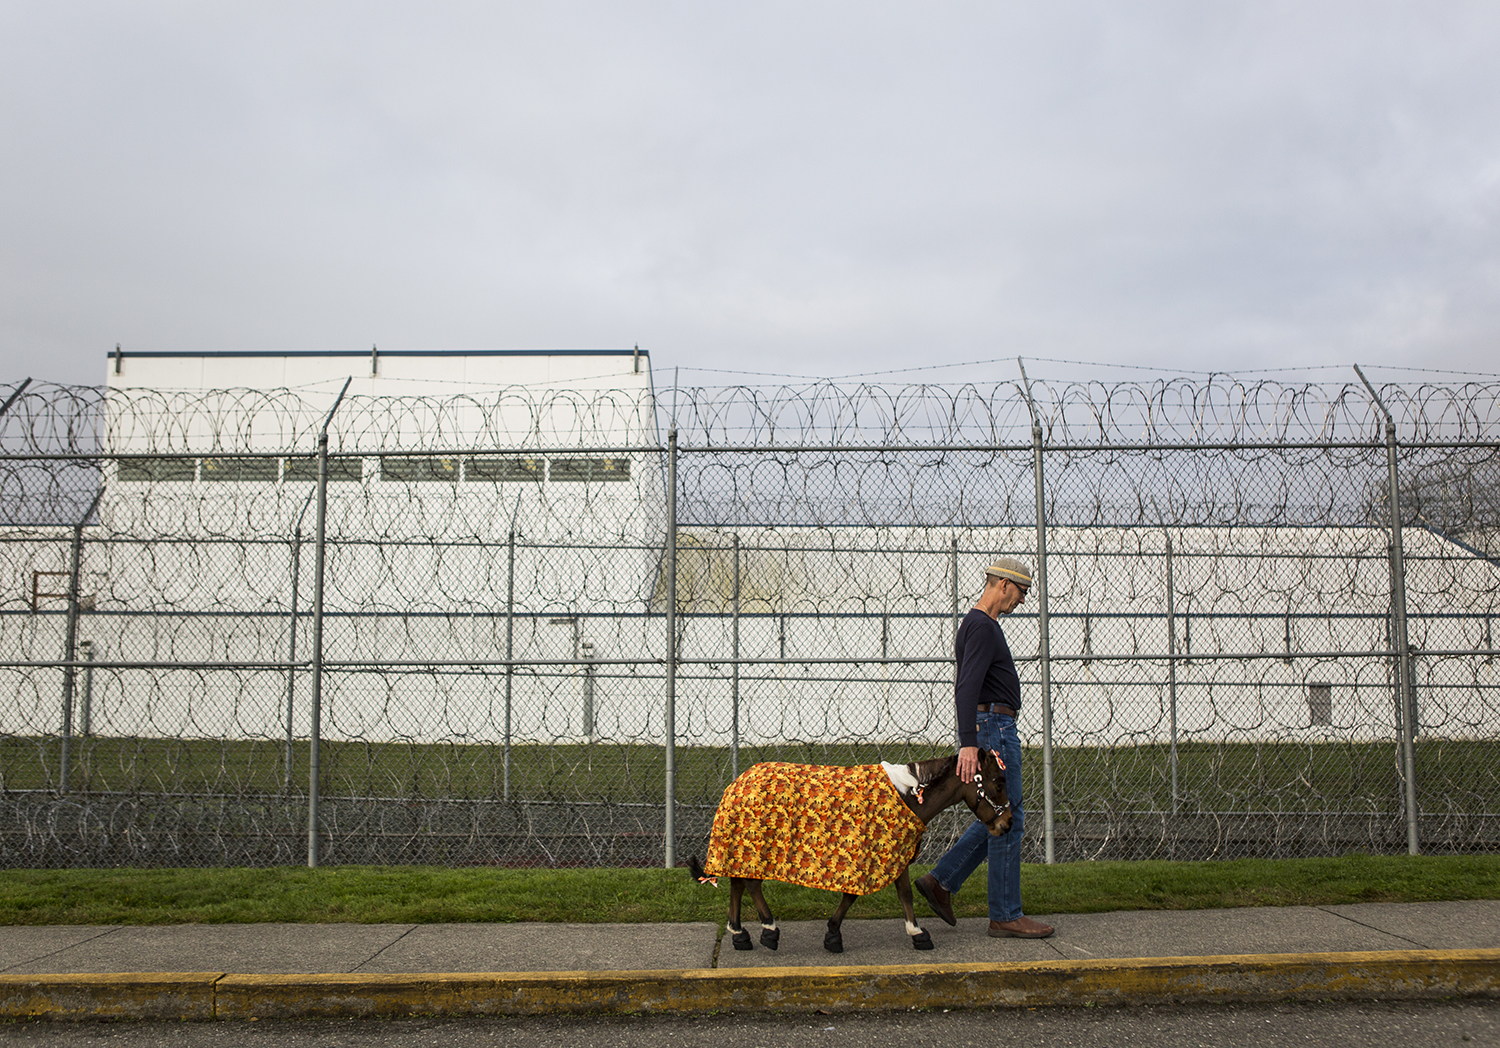 Triple B Foundation for Pet Therapy president Brian Hohstadt walks Streaker, the miniature pony, to the entrance of the Special Offenders Unit where he makes monthly visits to the inmates in the Monroe Correctional Complex on Tuesday, Oct. 30, 2018 in Monroe, Wa.